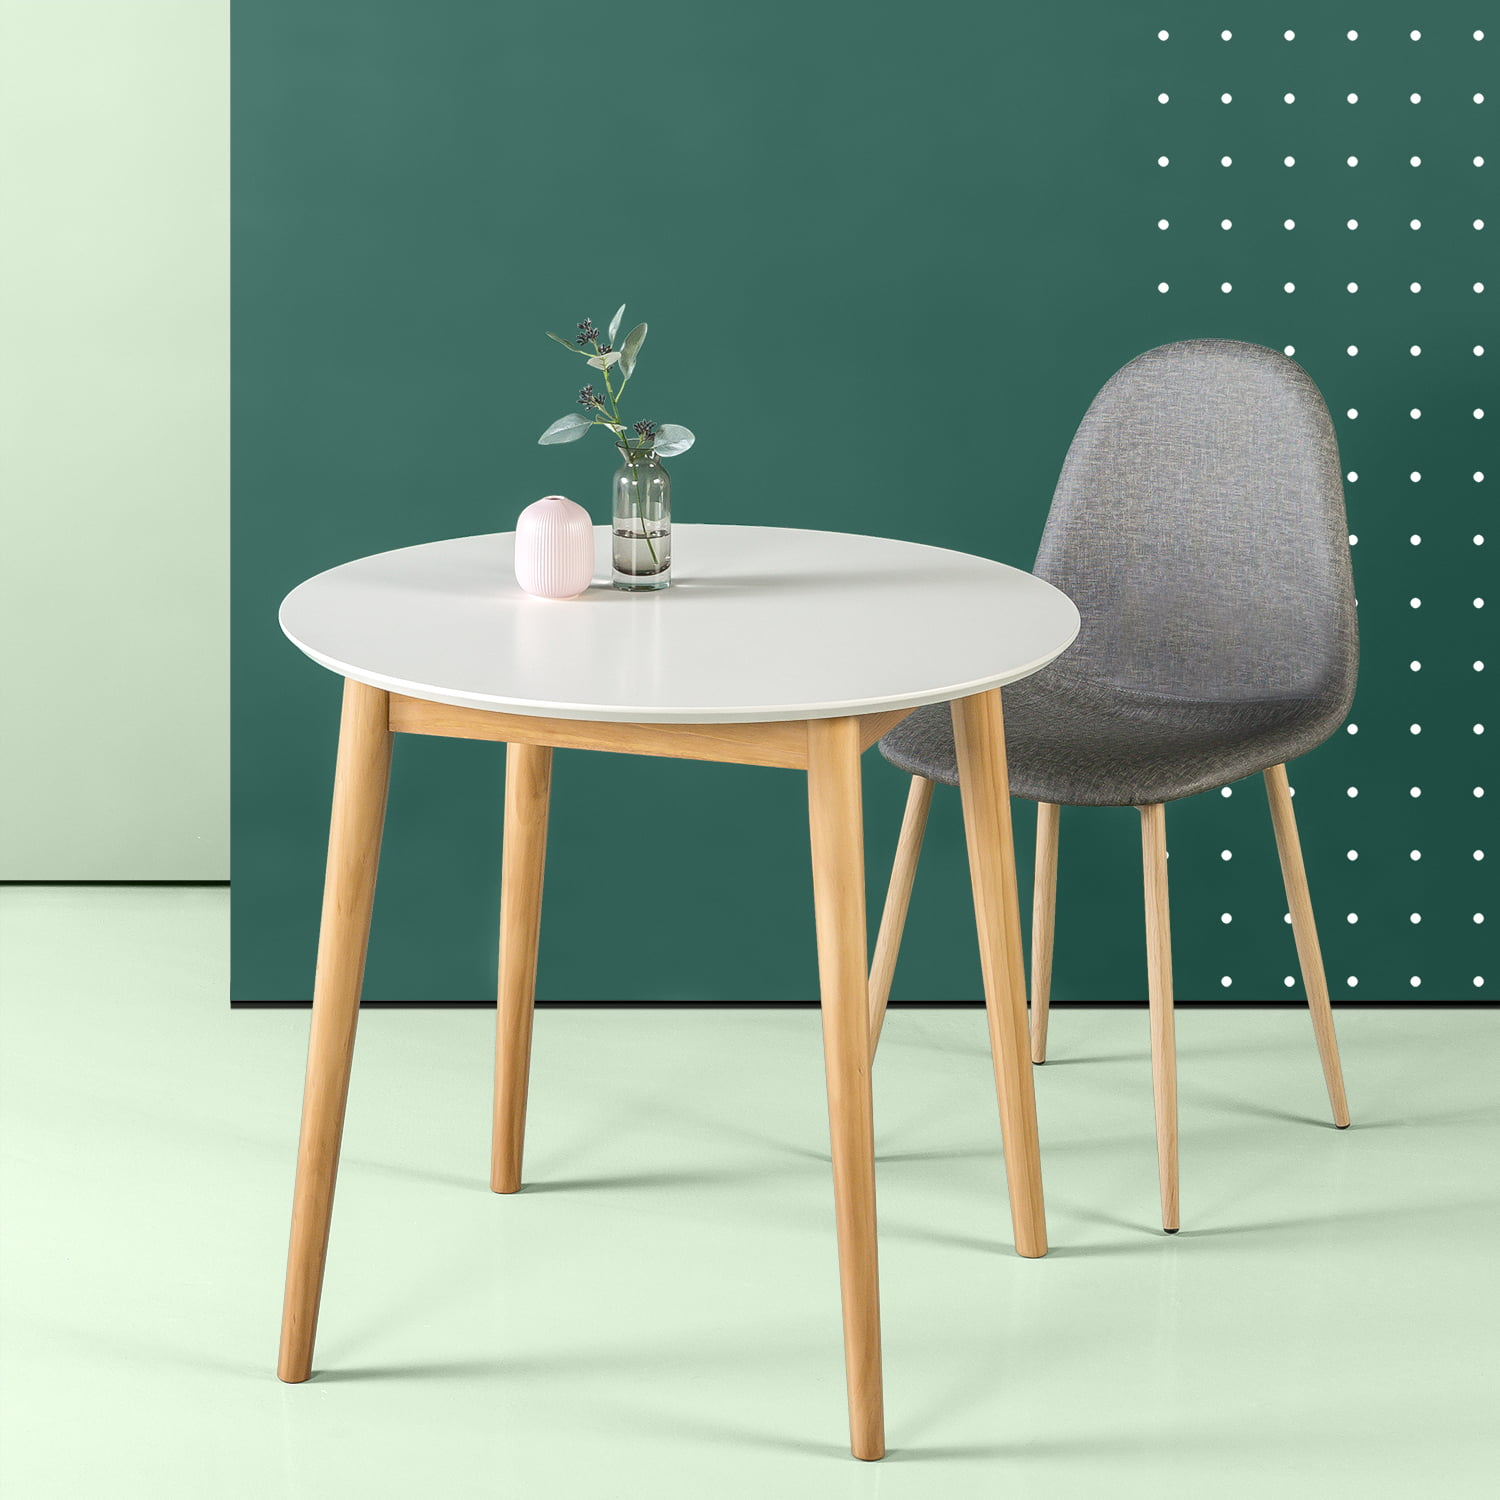 Zinus Mid-century Round Small Dining Table, White